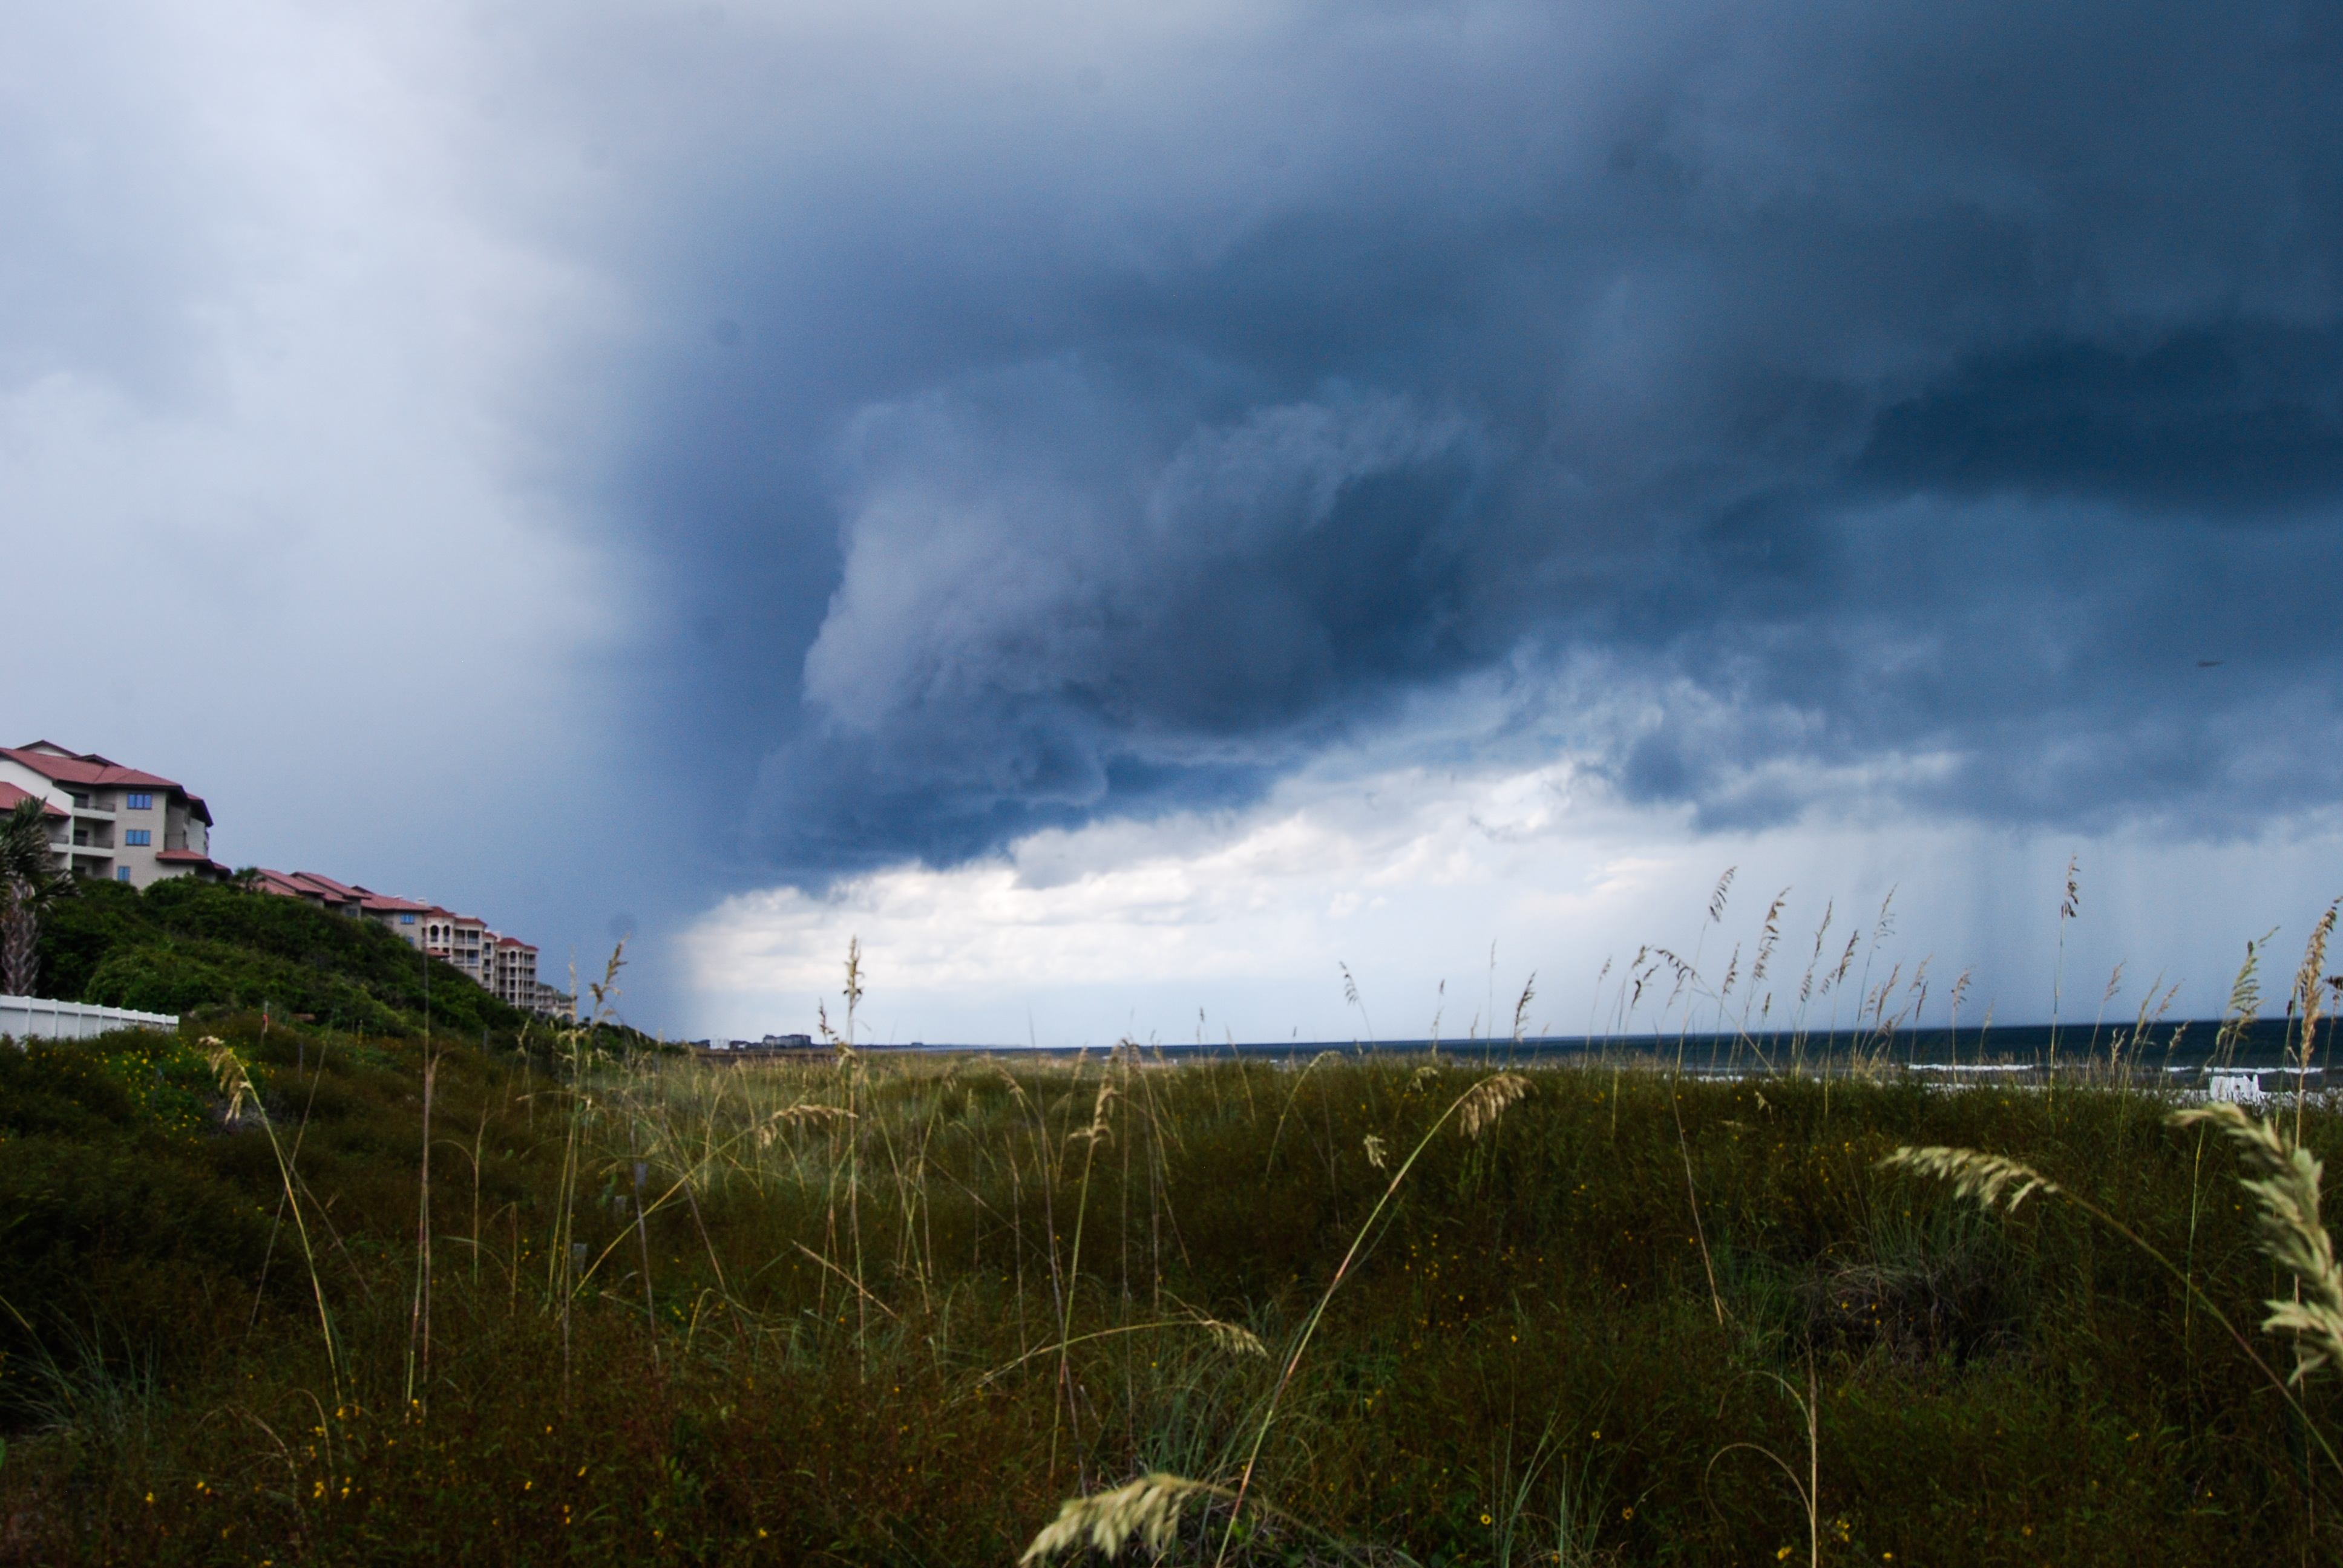 Florida: Thunderstorm- Breezing Through